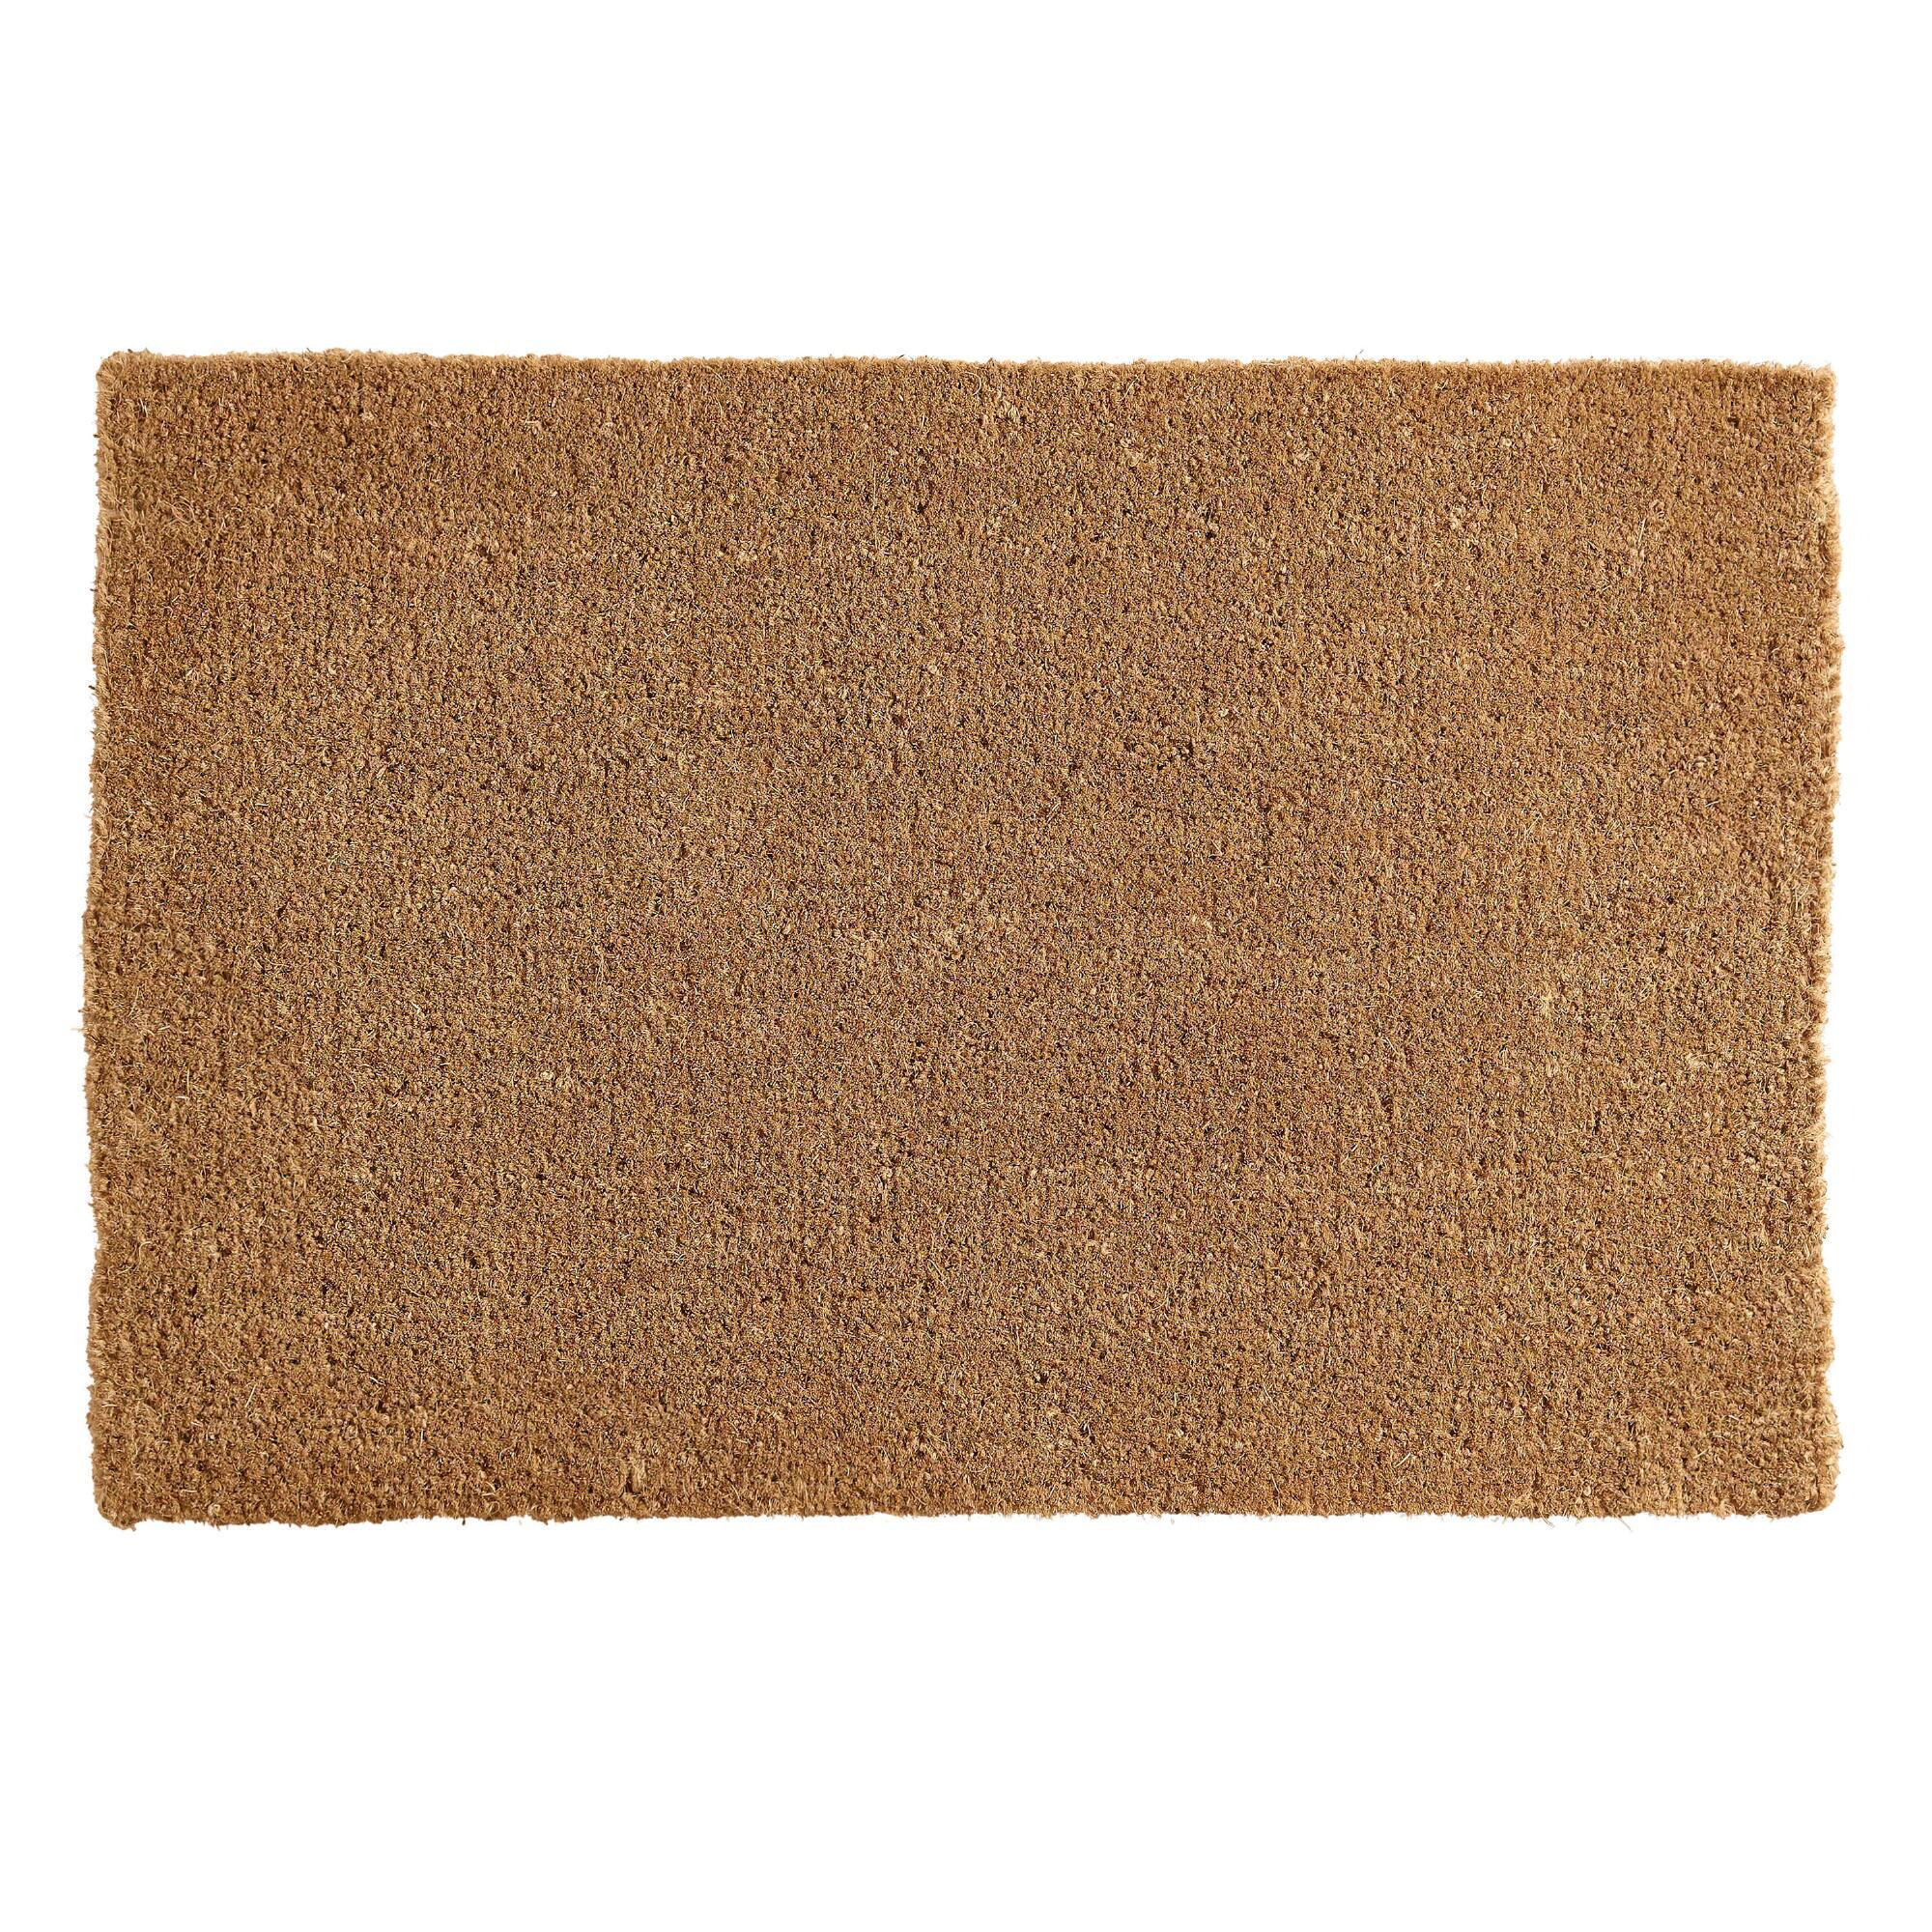 Coir Basic Doormat: Brown - Natural Fiber  by World Market